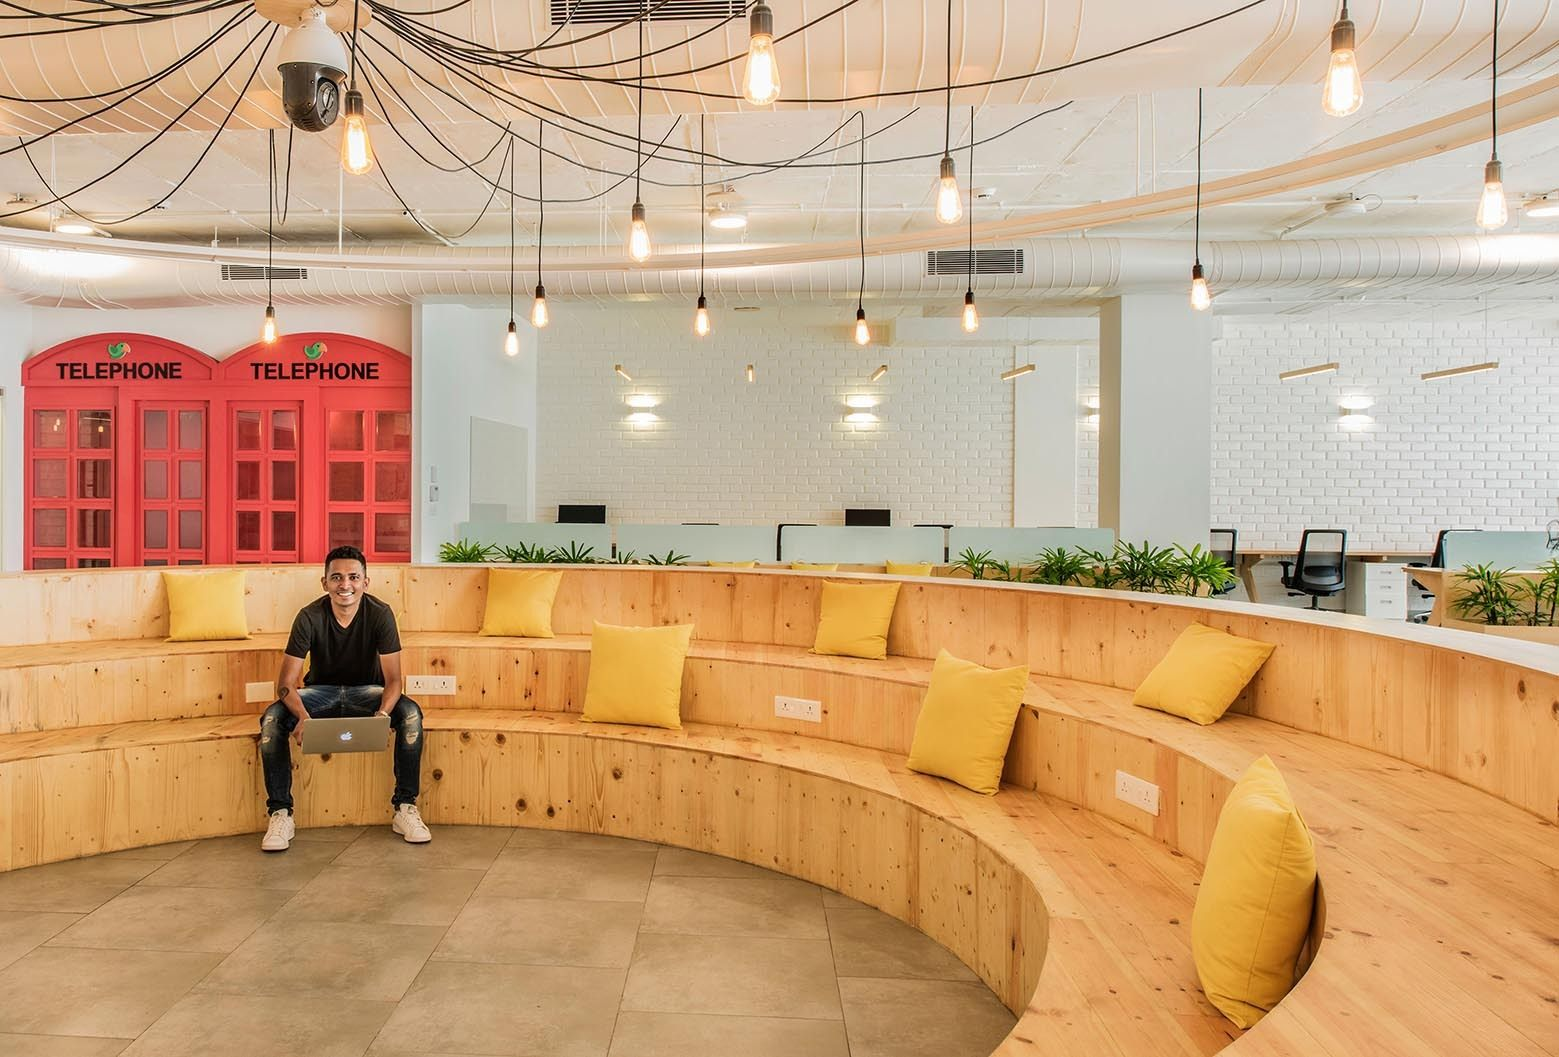 lookup hq / bhumiputra architecture | workspaces and architecture, Möbel